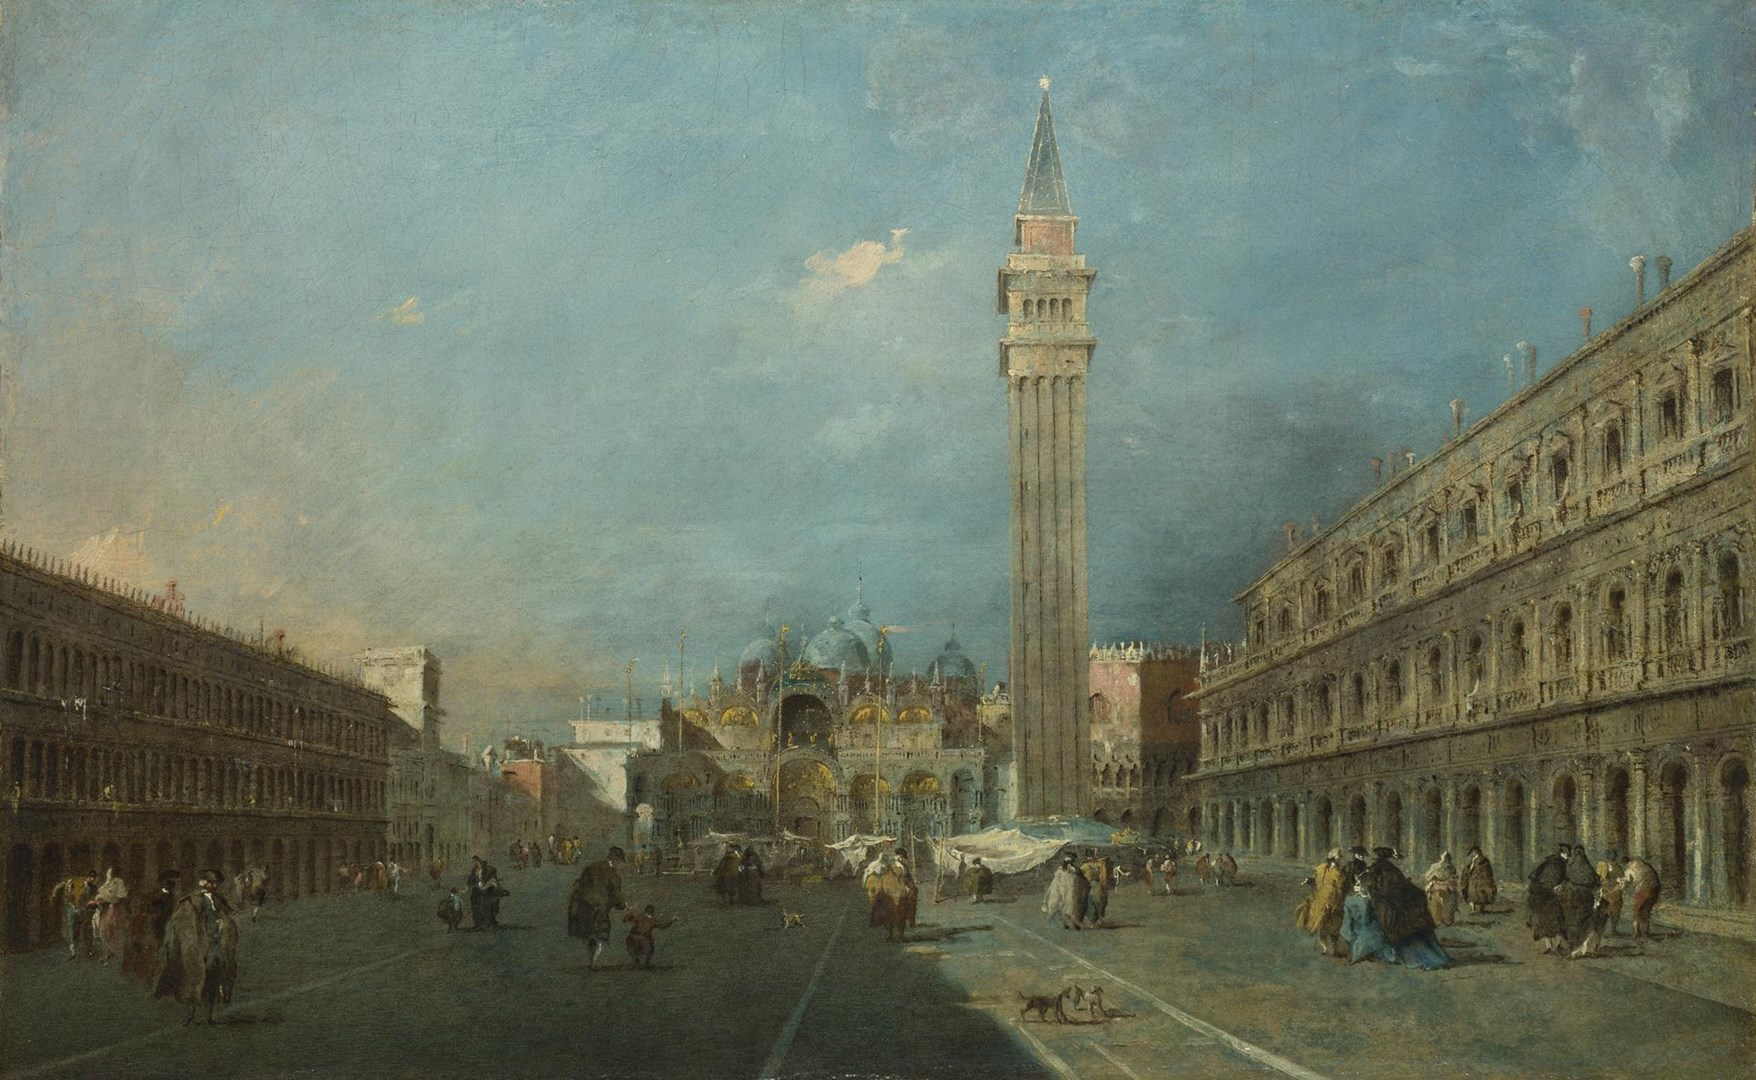 Venice: Piazza San Marco by Francesco Guardi